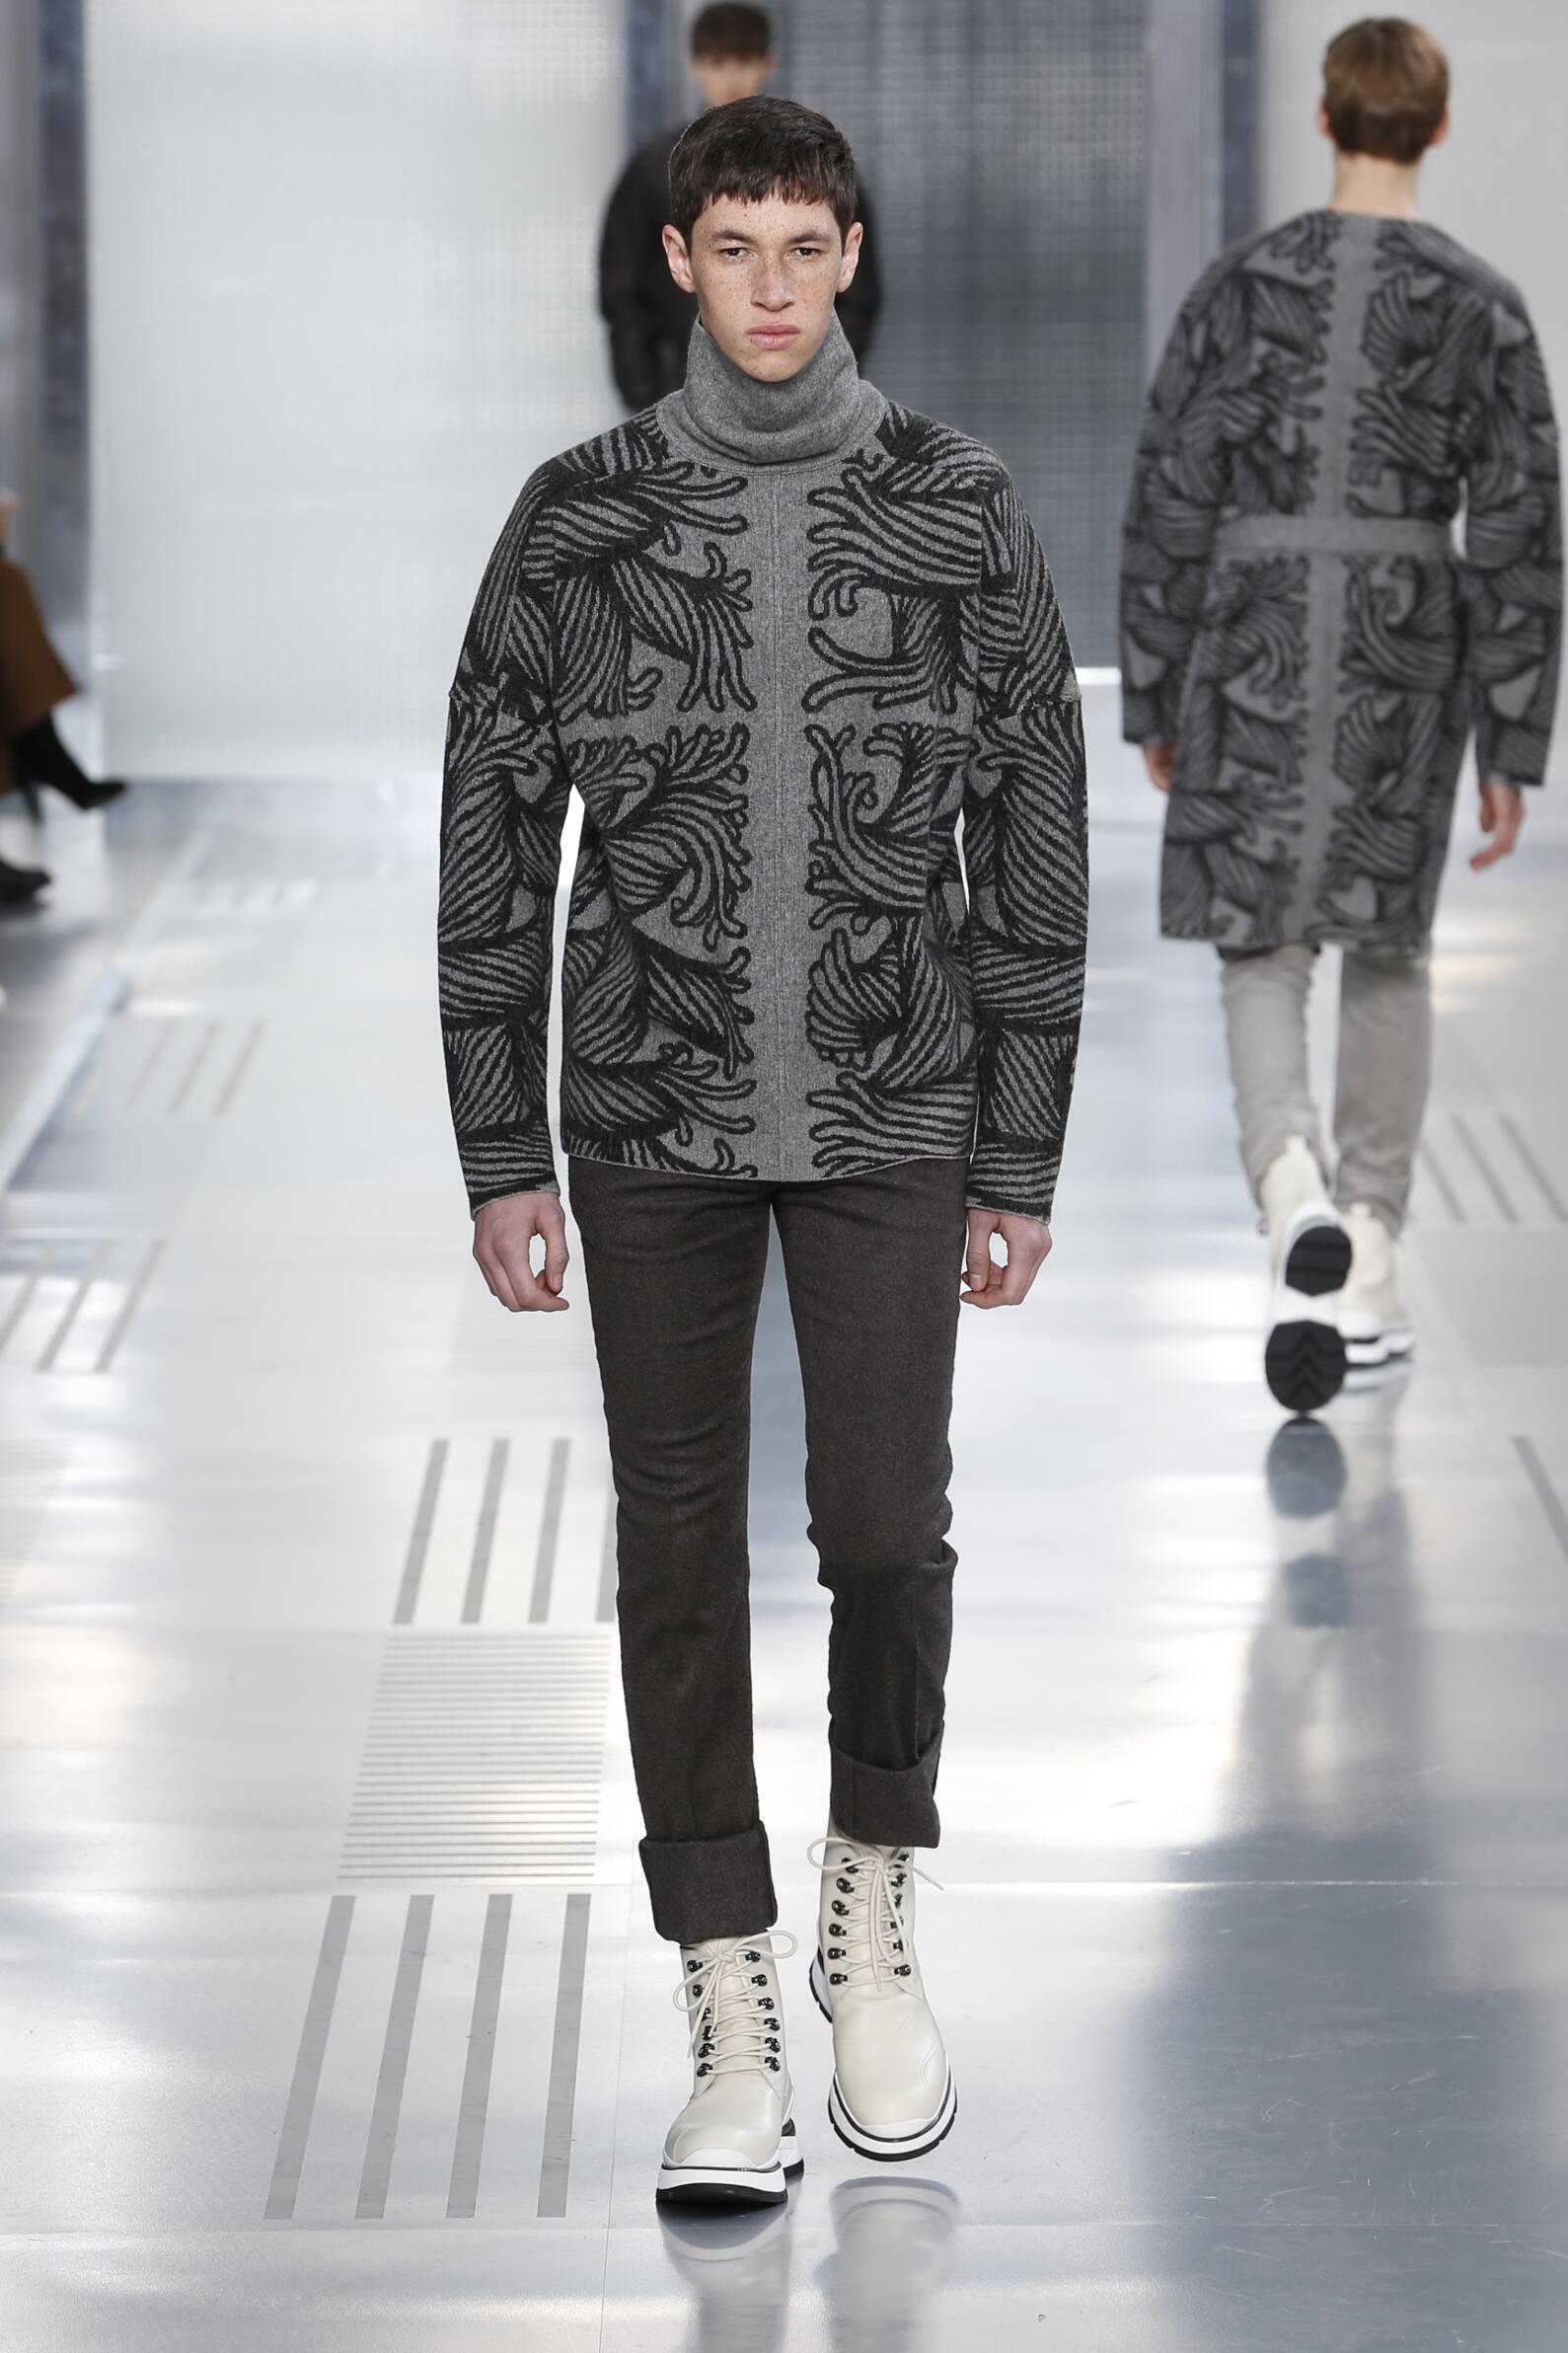 Louis Vuitton Fall Winter 2015 16 Mens Collection Paris Fashion Week